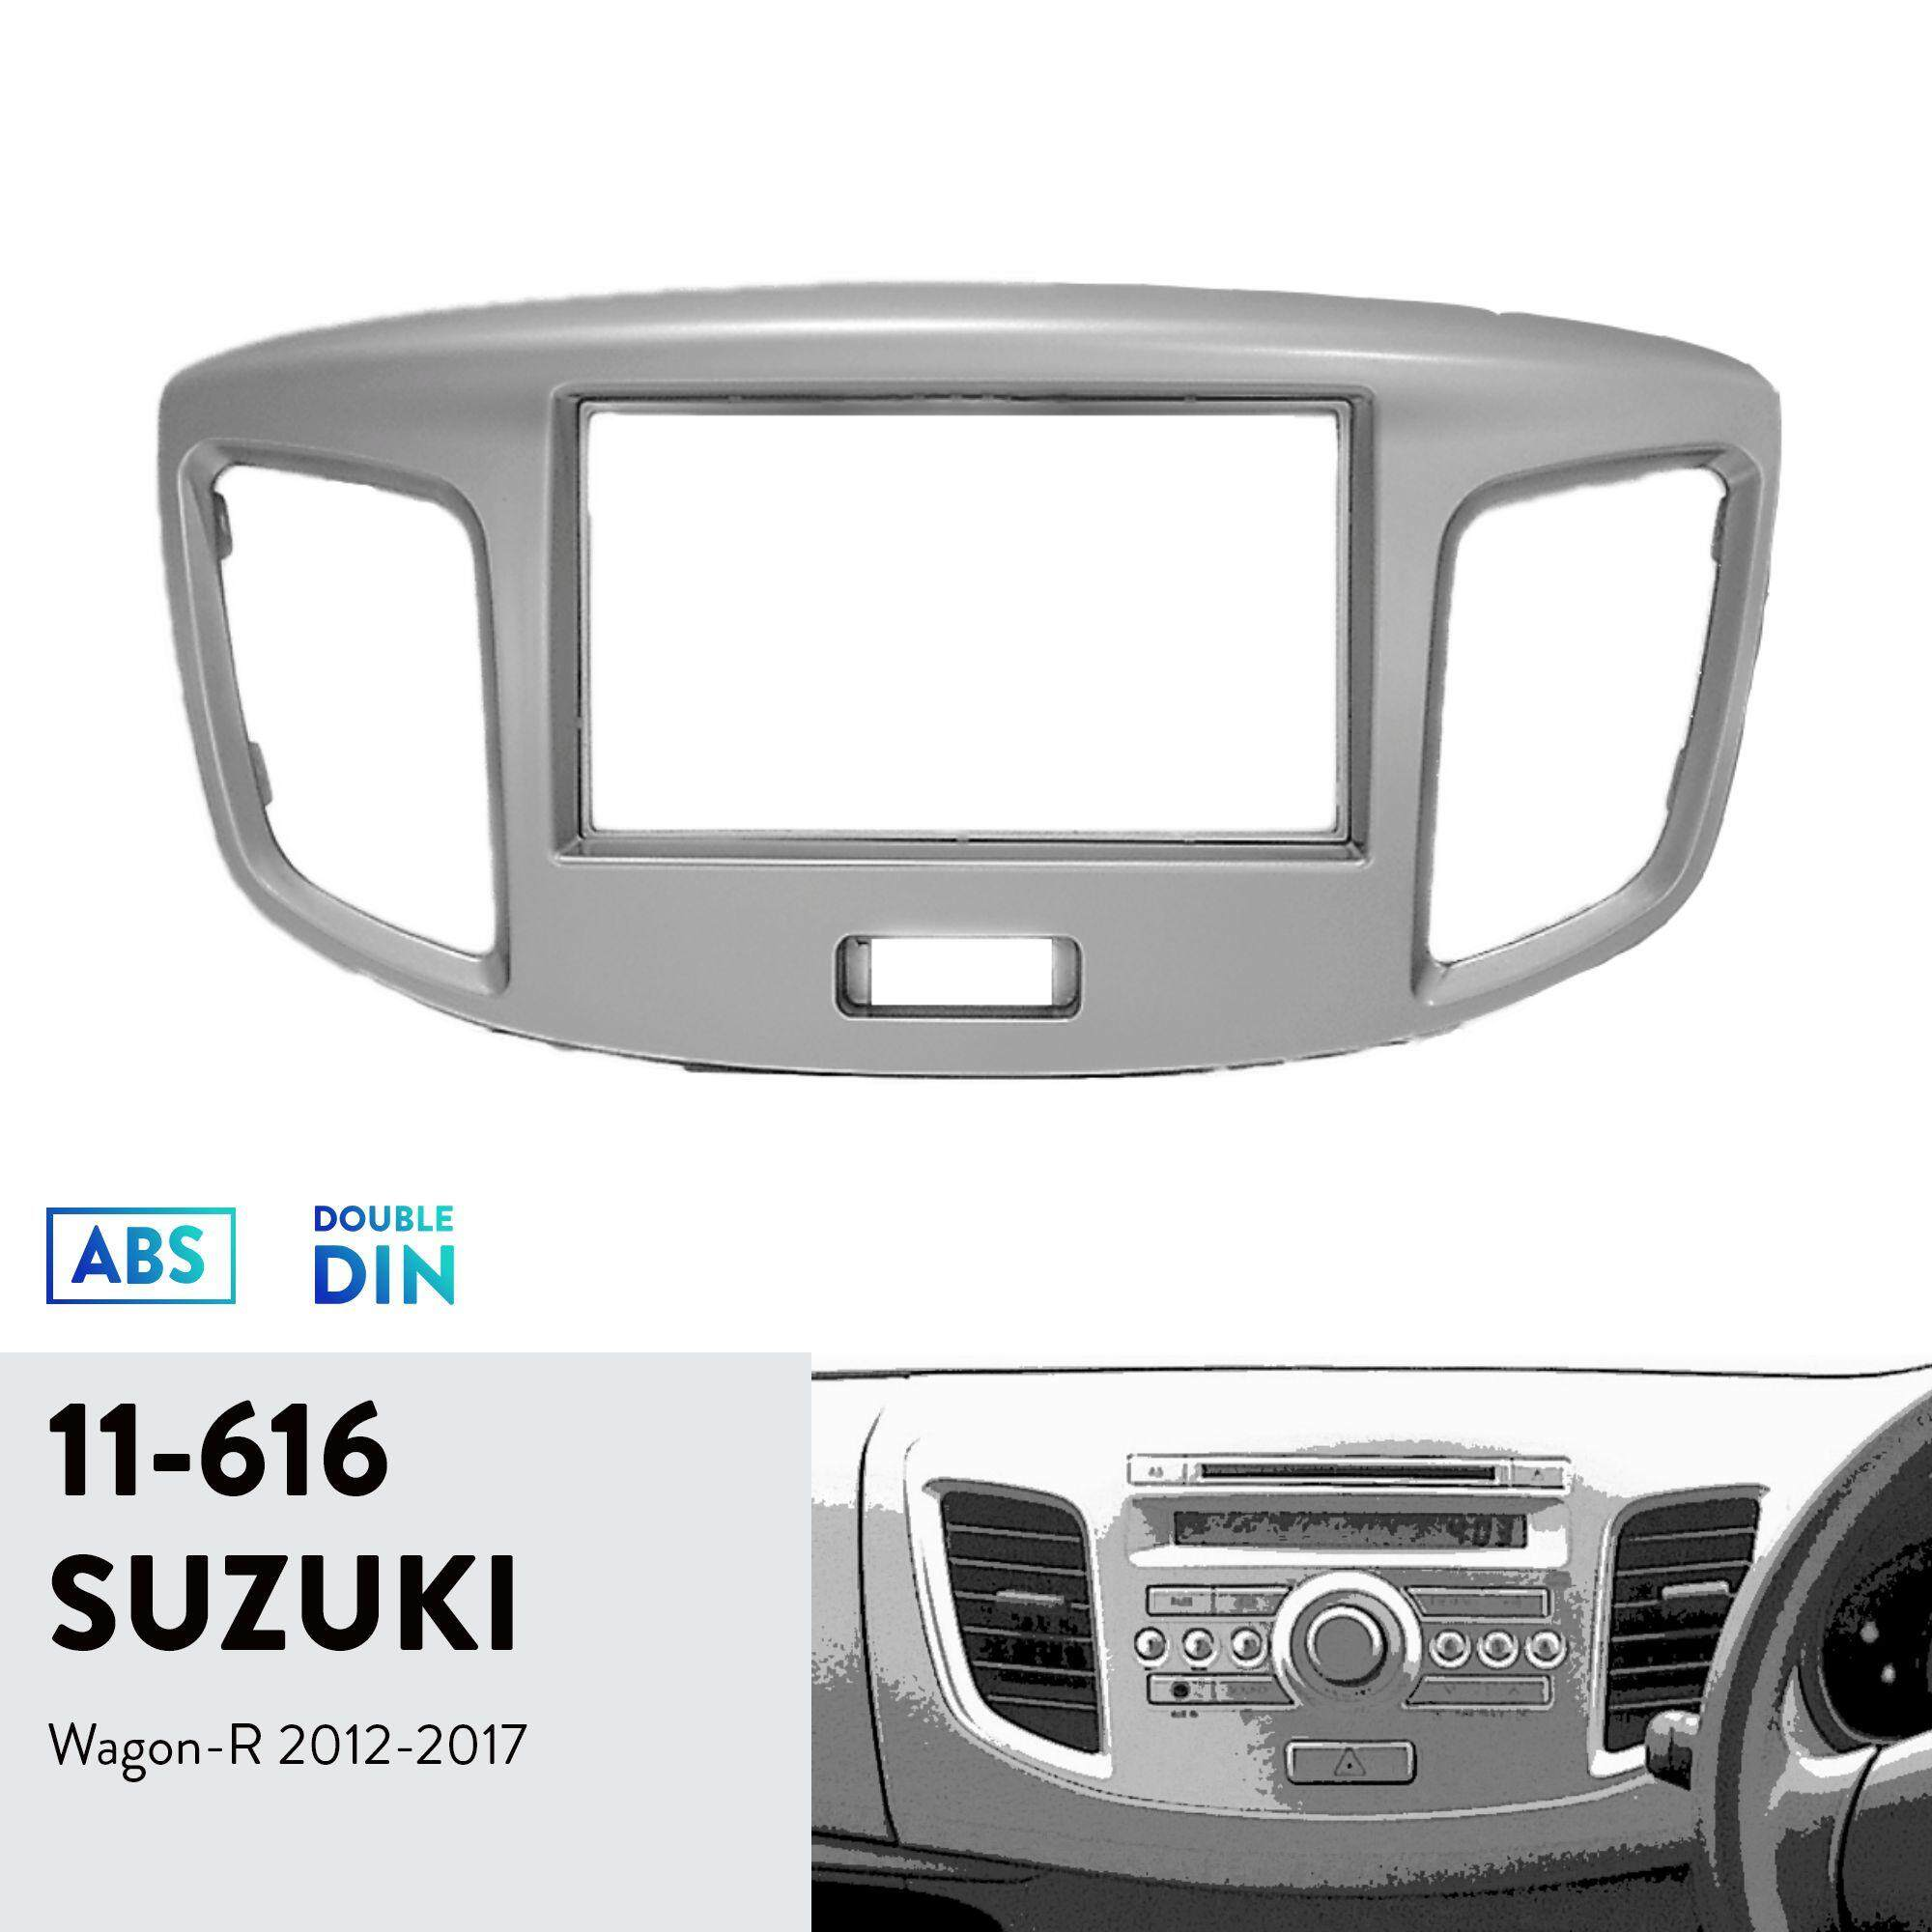 Ugar 11-616 Trim Fascia Car Radio Installation Mounting Kit For Suzuki Wagon-R 2012-2017 By Ugar.